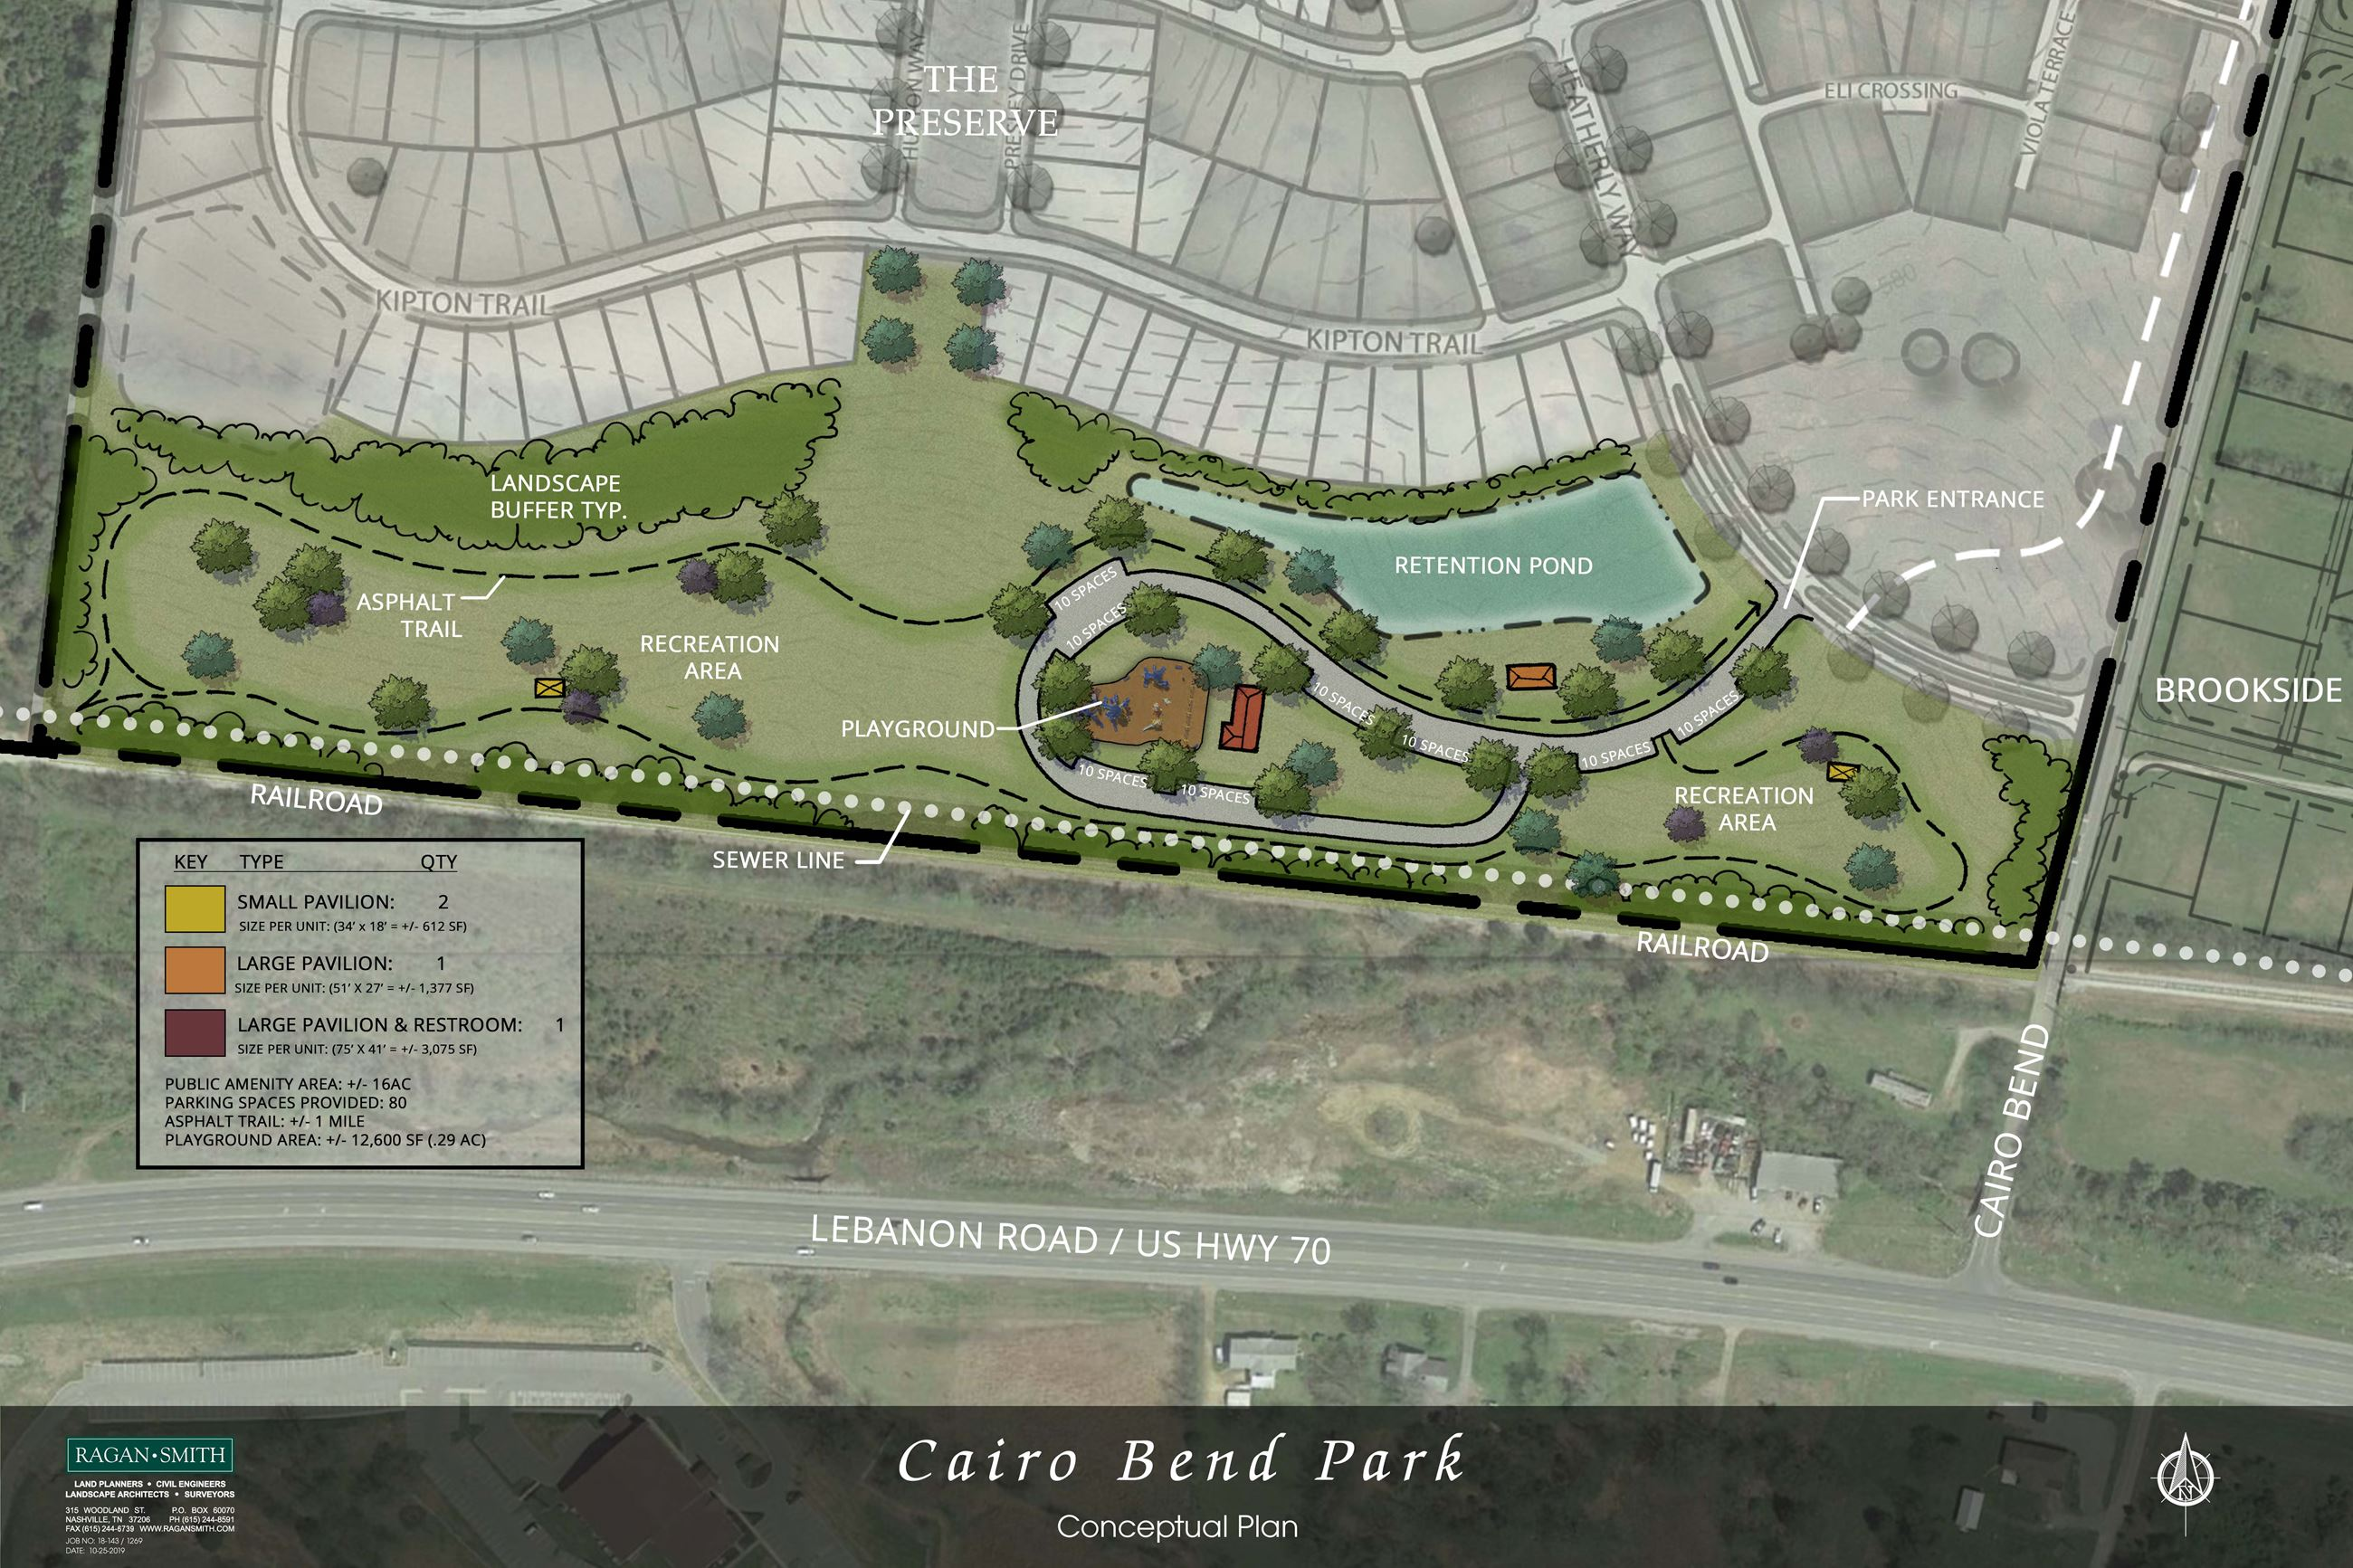 Rendering - Cairo Bend Park without Amphitheater